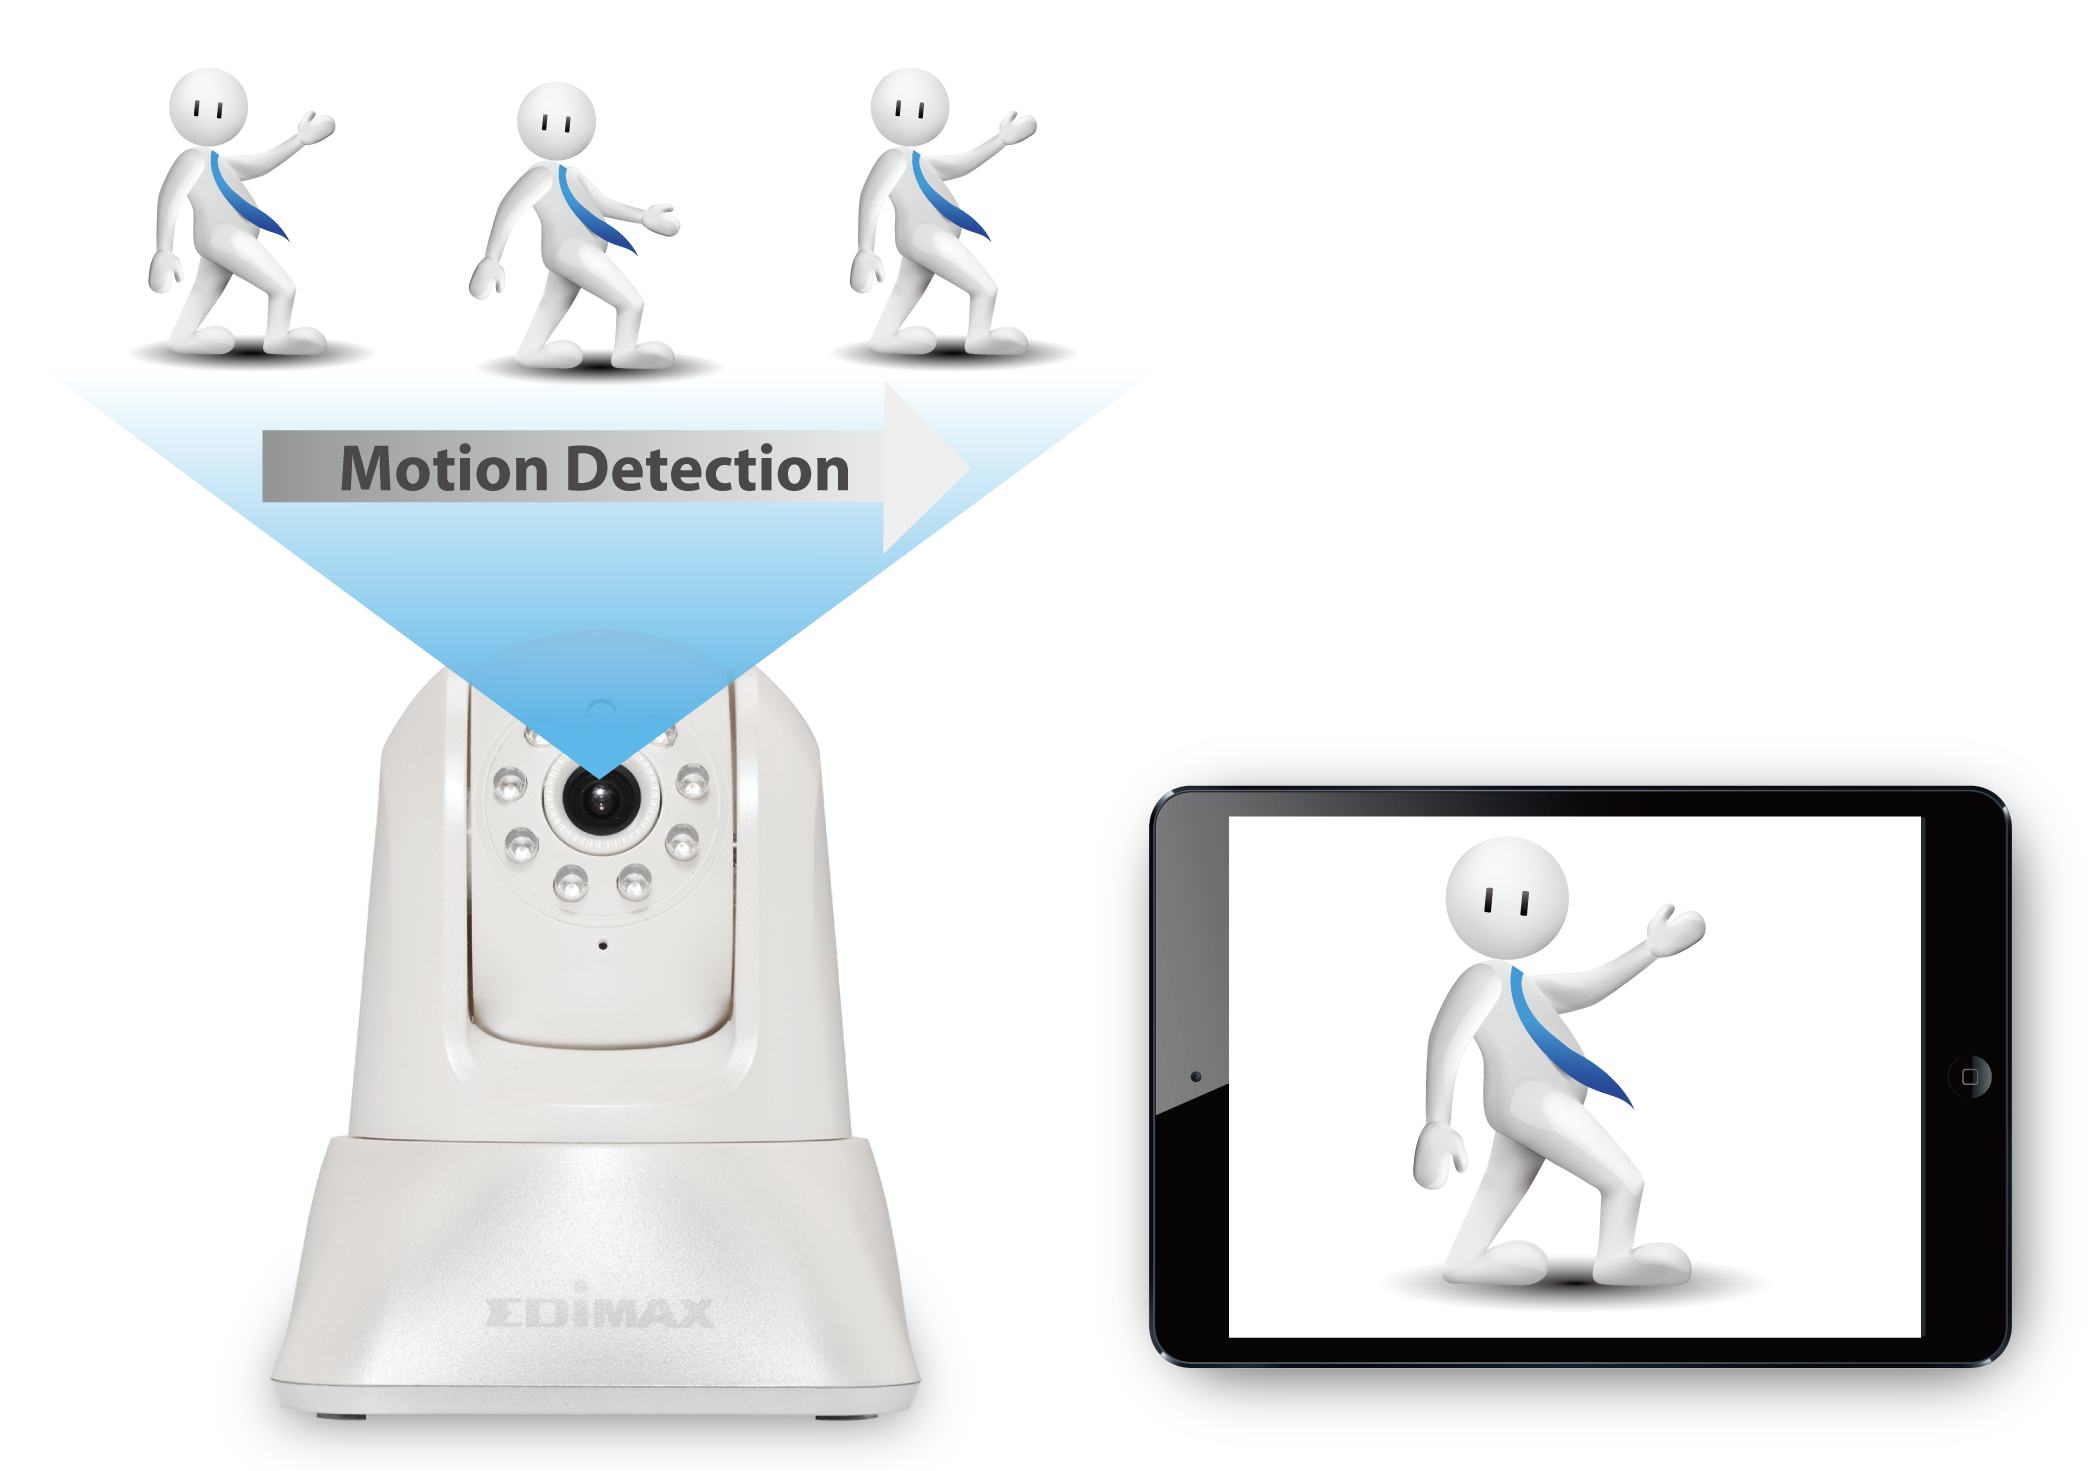 IC-7001W Wireless Day & Night PT Network Camera IC-7001W_motion_detection.png